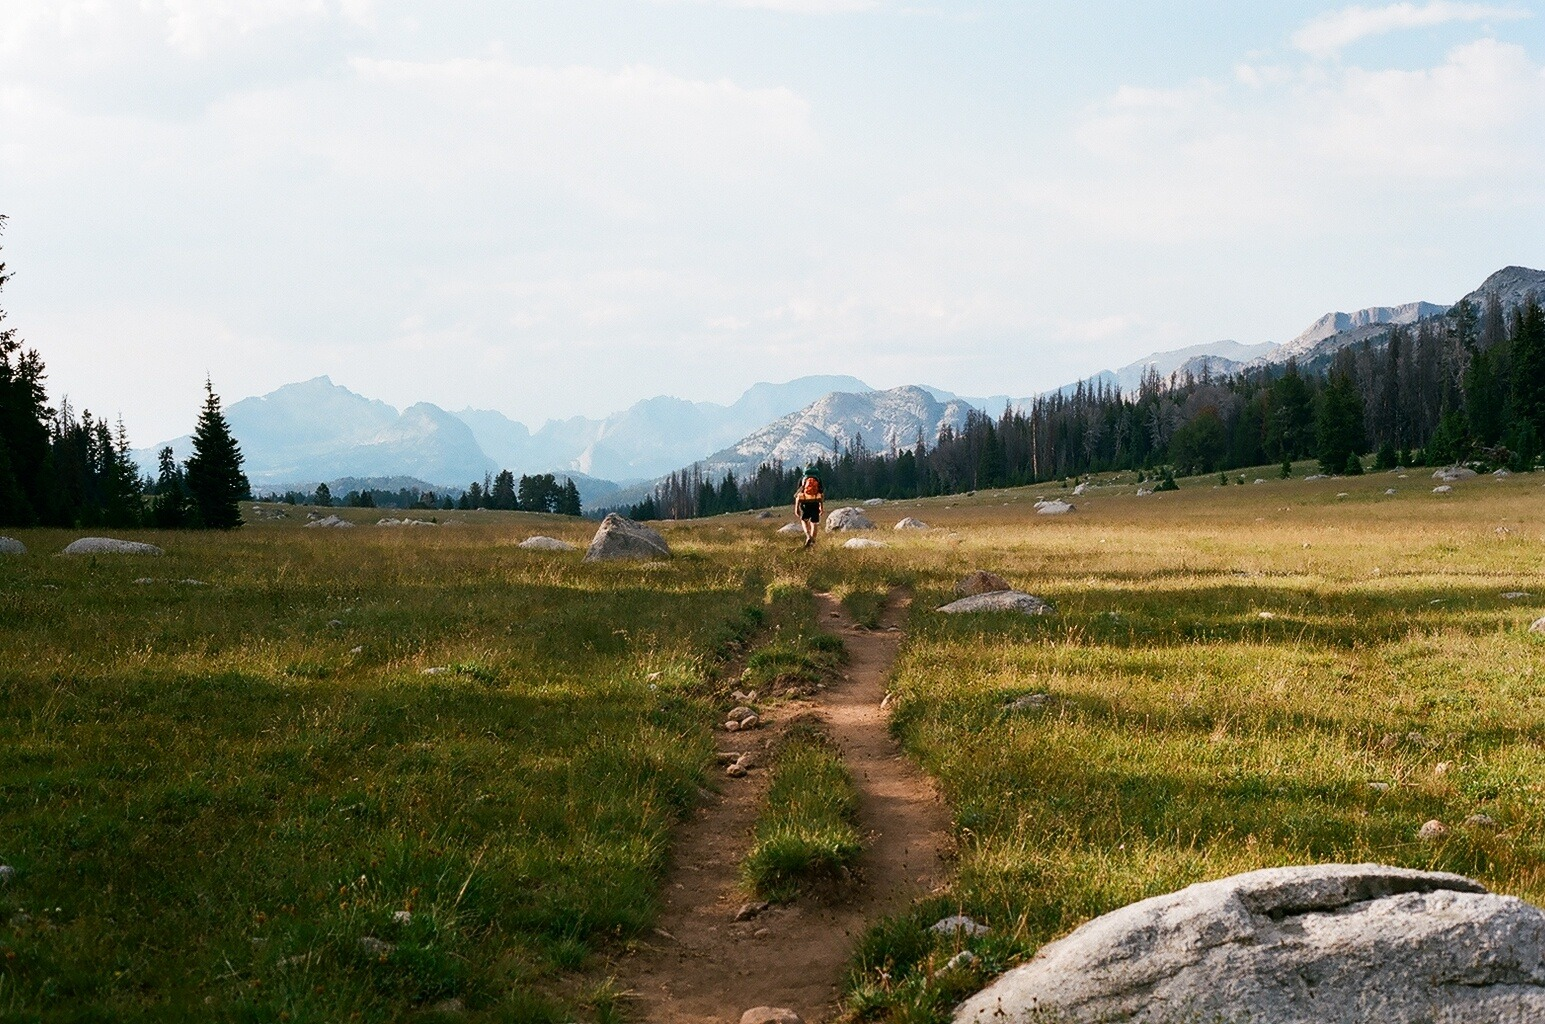 The Wind River Range comes into view.  Photo courtesy Flickr user: Douglas LeMoine